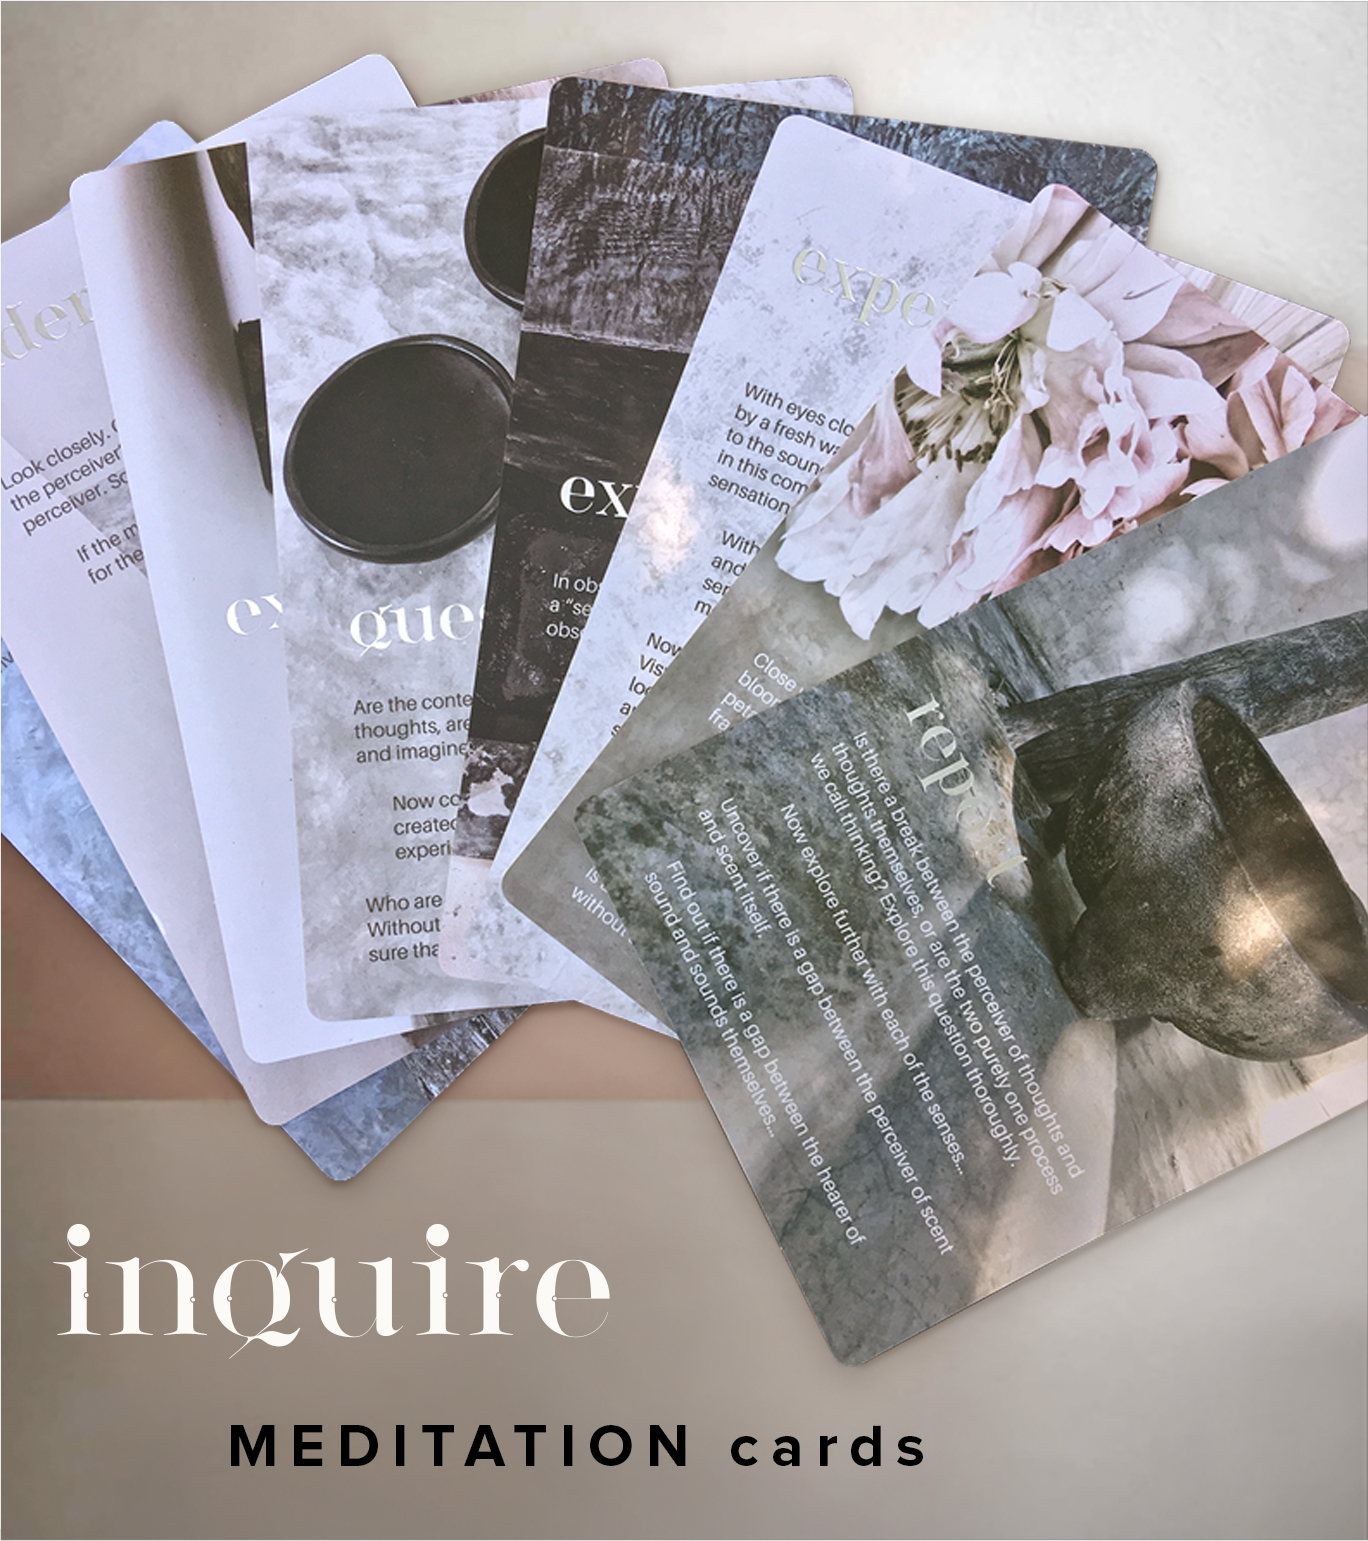 noself-inquire-cards.jpg